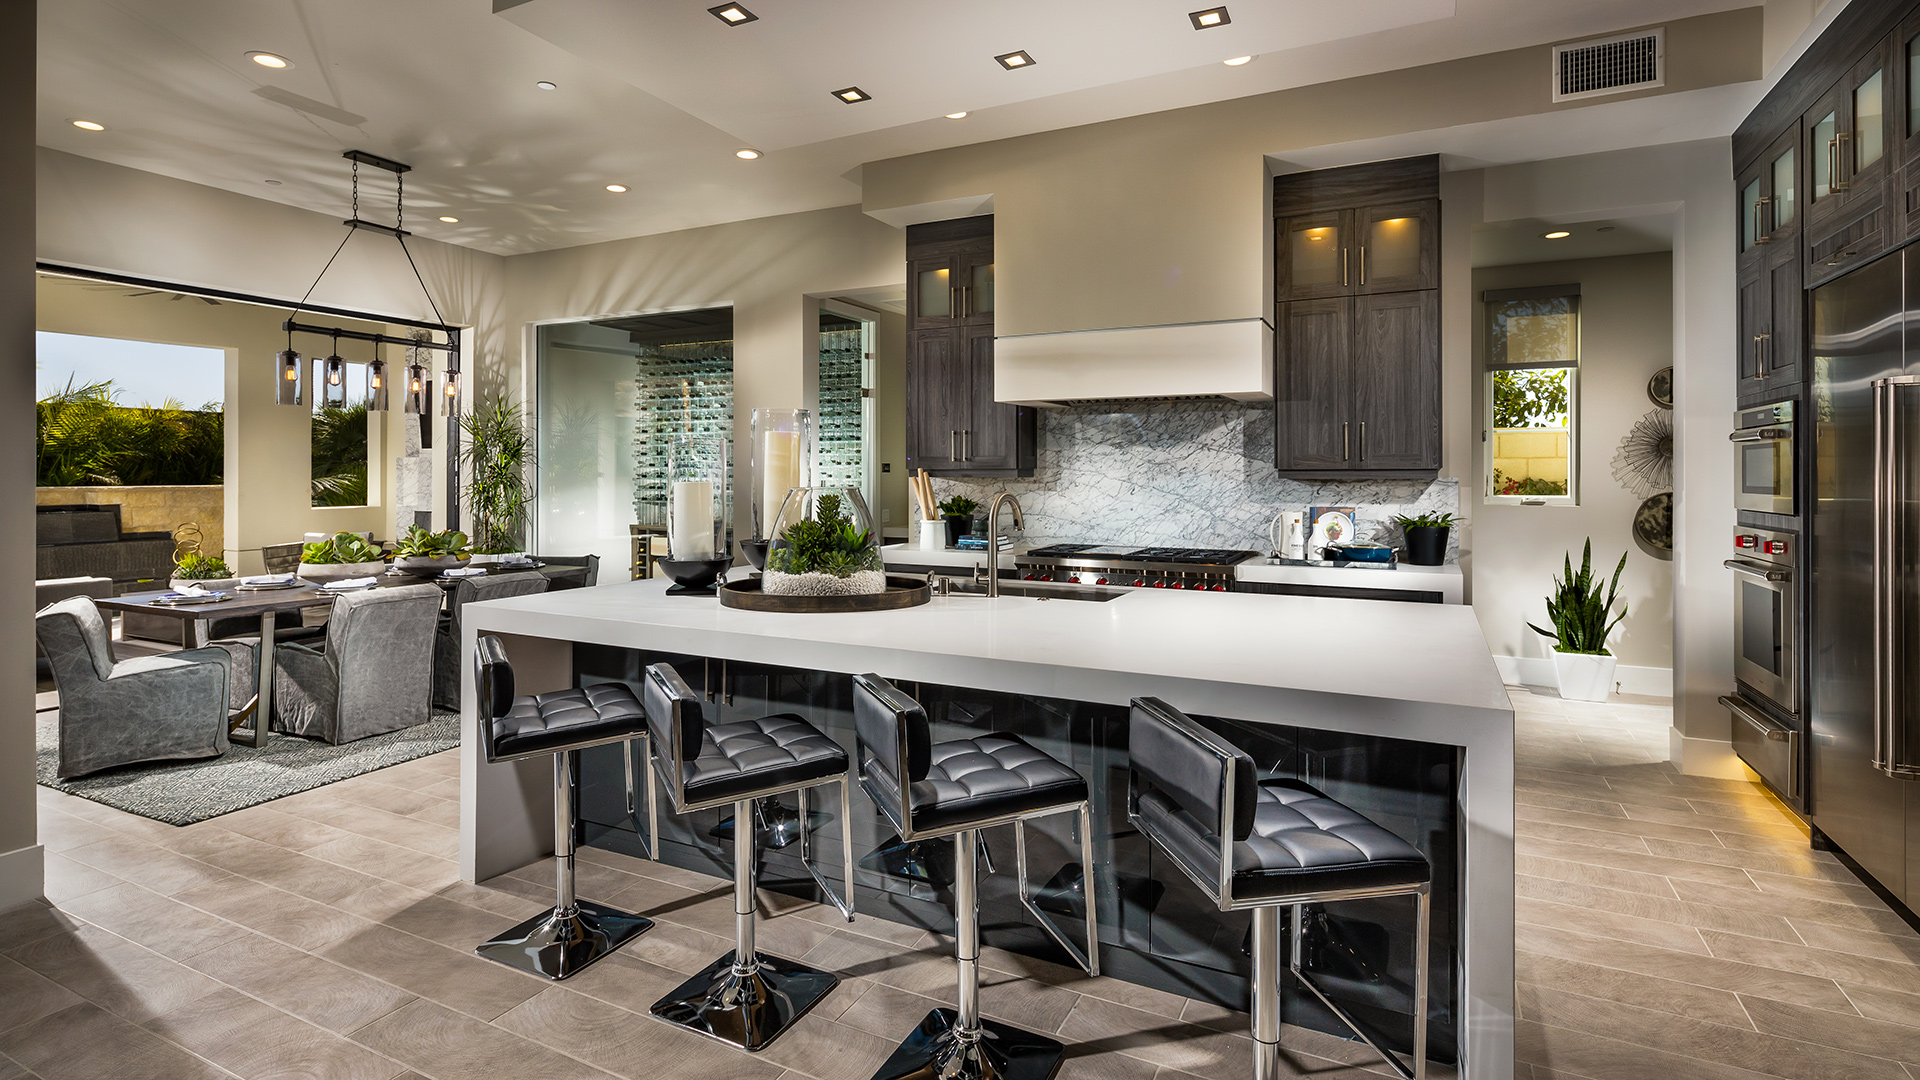 Gourmet kitchens perfect for entertaining